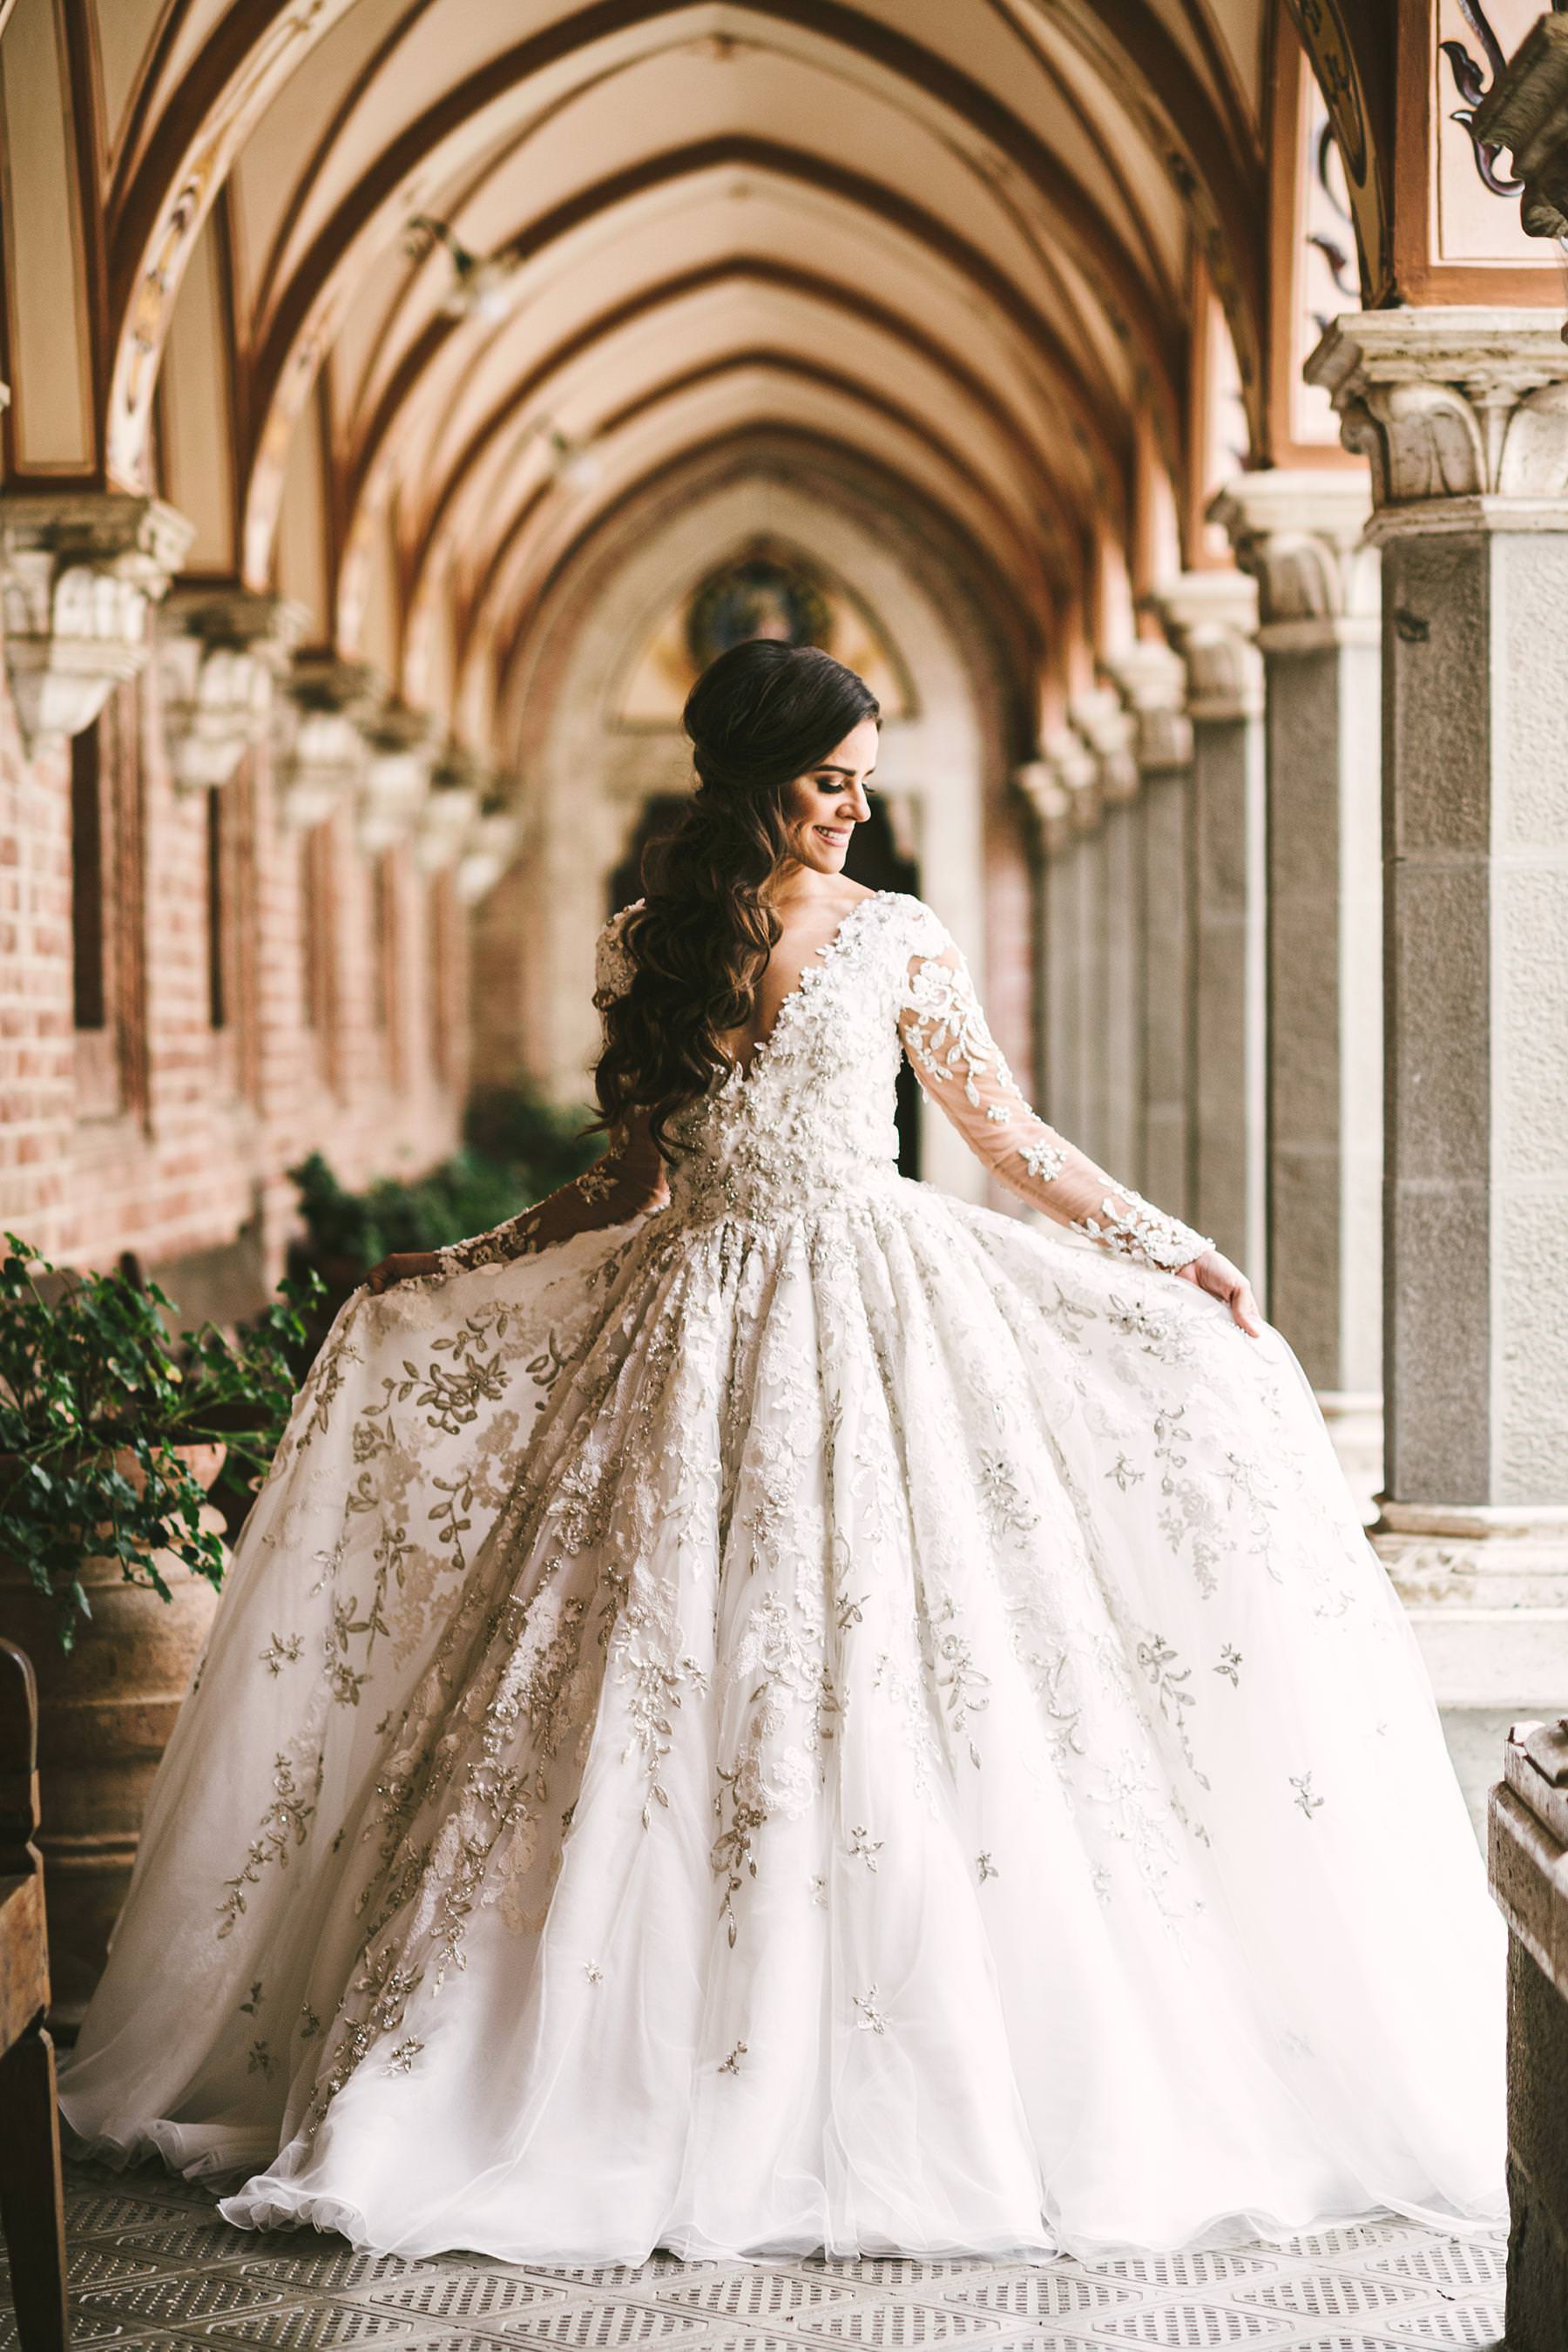 Rippling and sumptuous Tuscany wedding in the elegant Castle of Valenzano. Timeless elegant bride Ilyssa in a perfect wedding gown by Ysa Makino